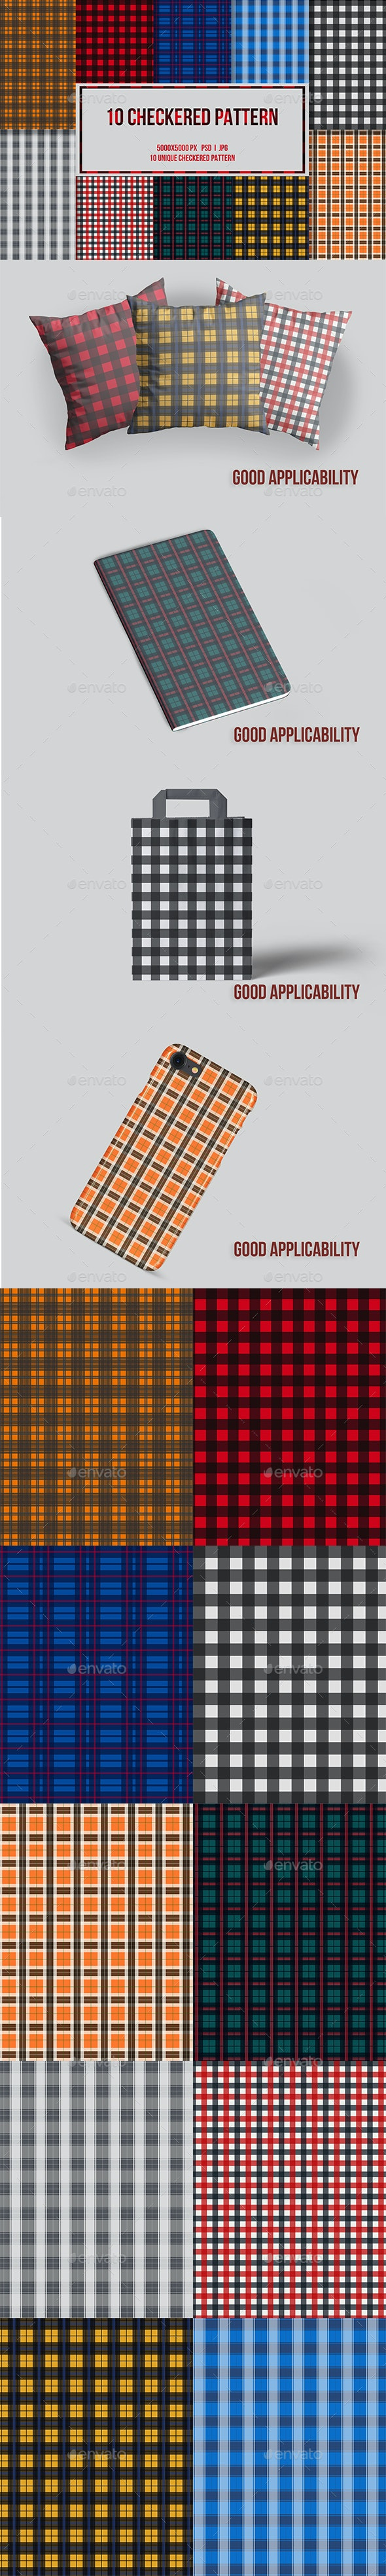 10 Checkered Patterns - Patterns Backgrounds